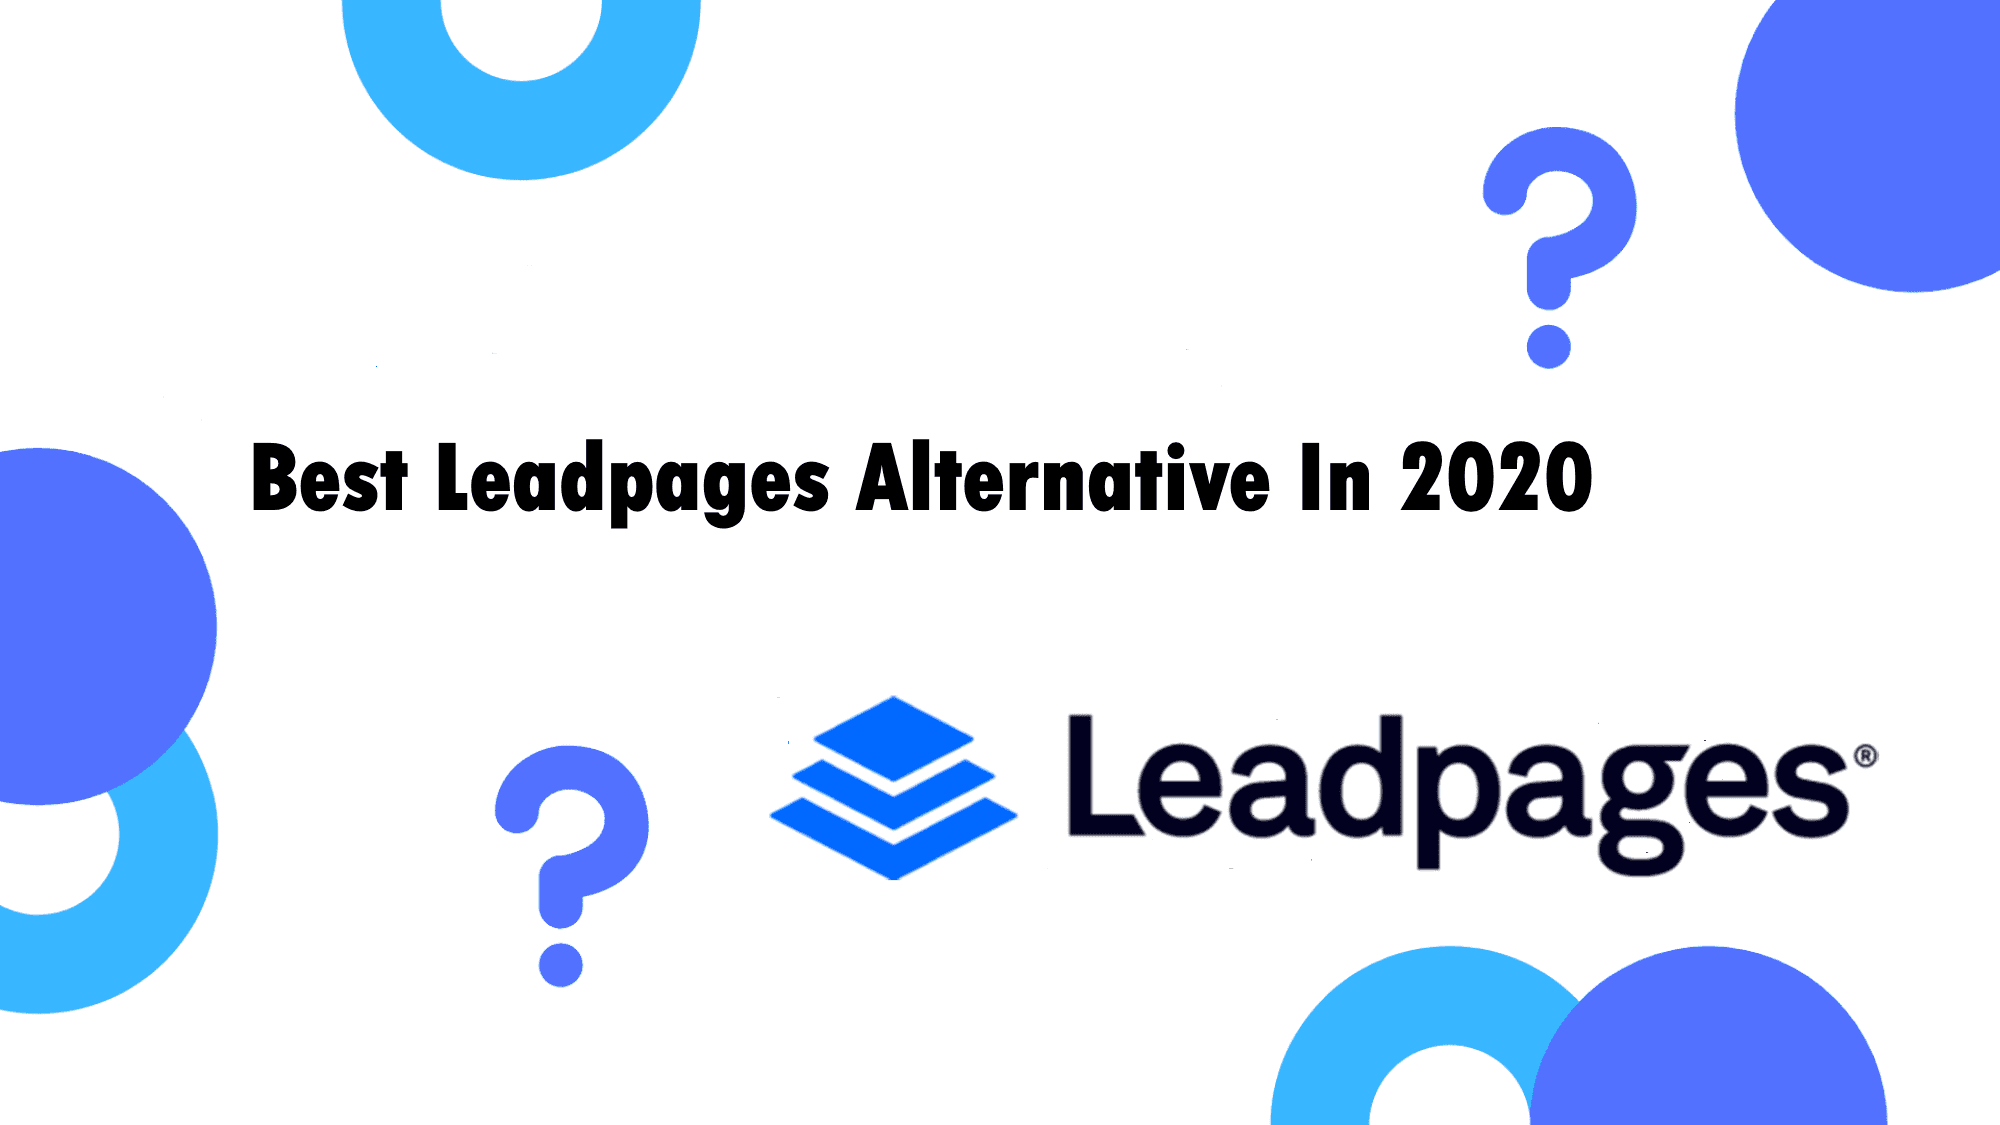 The Only Leadpages Alternative You'll Need in 2020